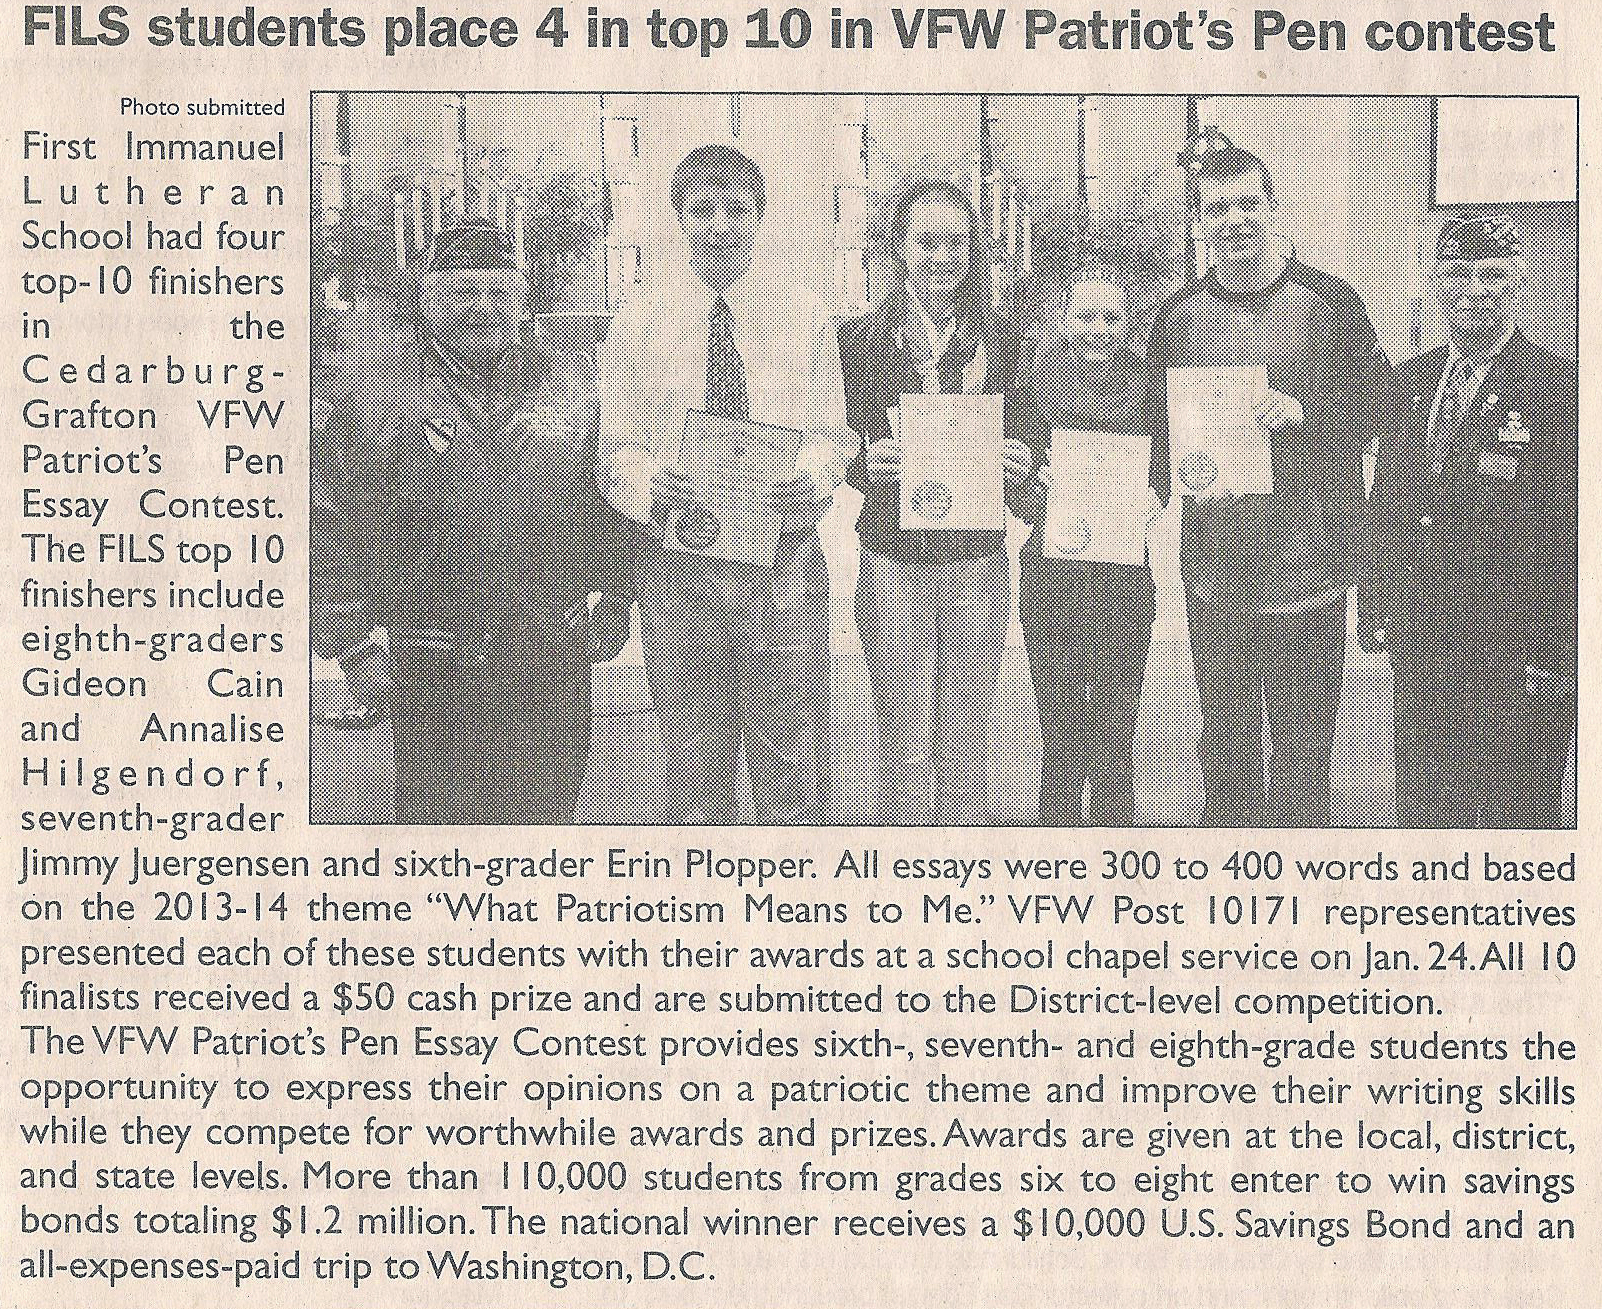 vfw essay 2013 Patriots pen patriot's pen each her essay on the 2013-2014 theme vfw – veterans of foreign wars vfw – youth activities vfw department of oregon.